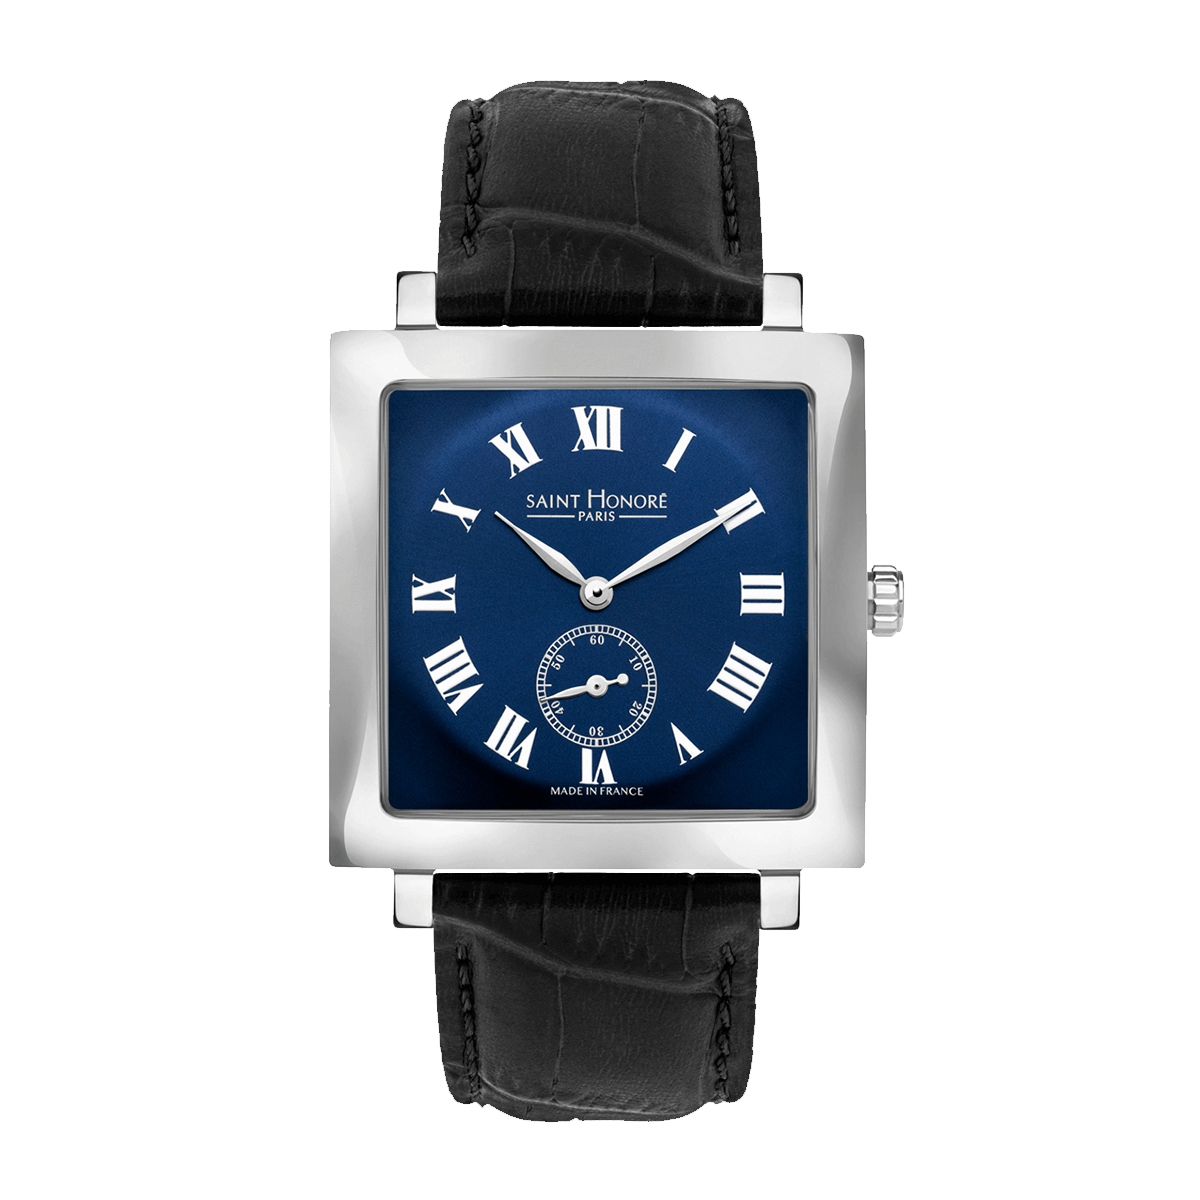 CARREE Men's watch - Square stainless steel case, blue dial, black leather strap